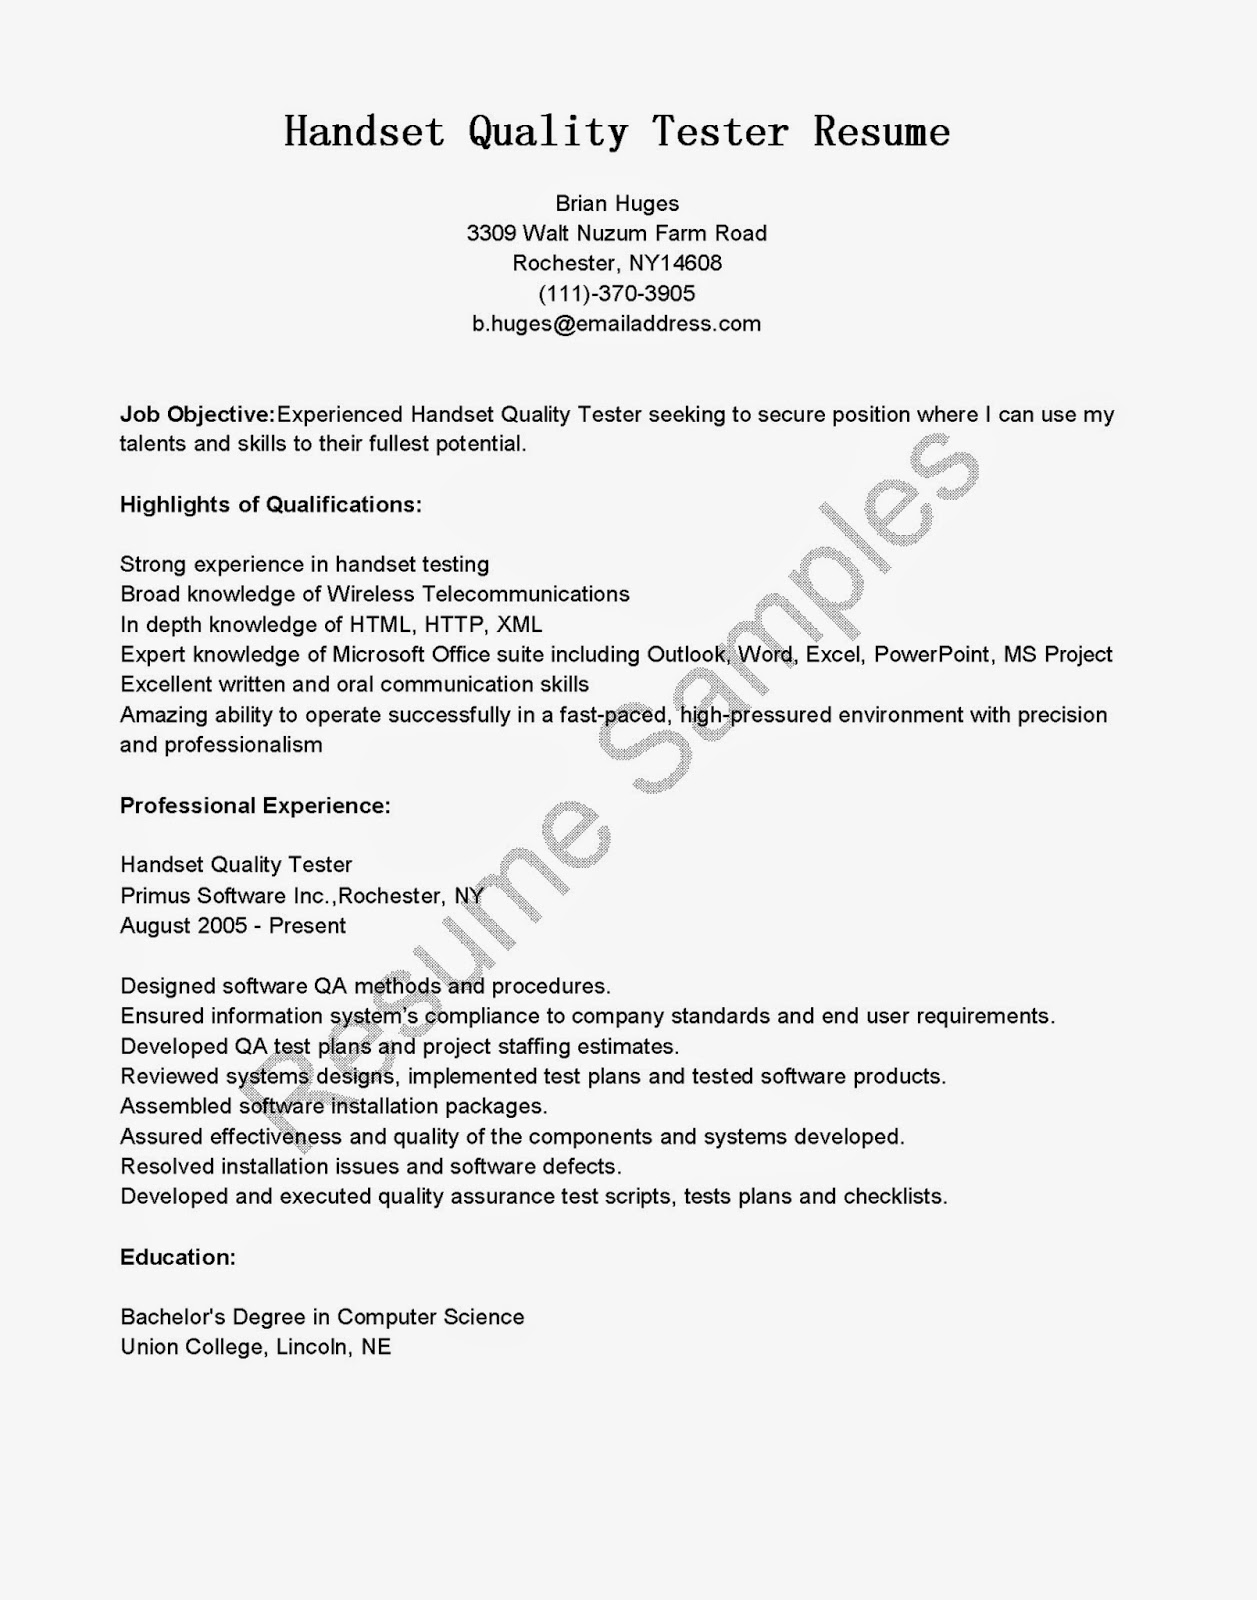 resume for qa tester diepieche tk software testing resume for qa tester 24 04 2017